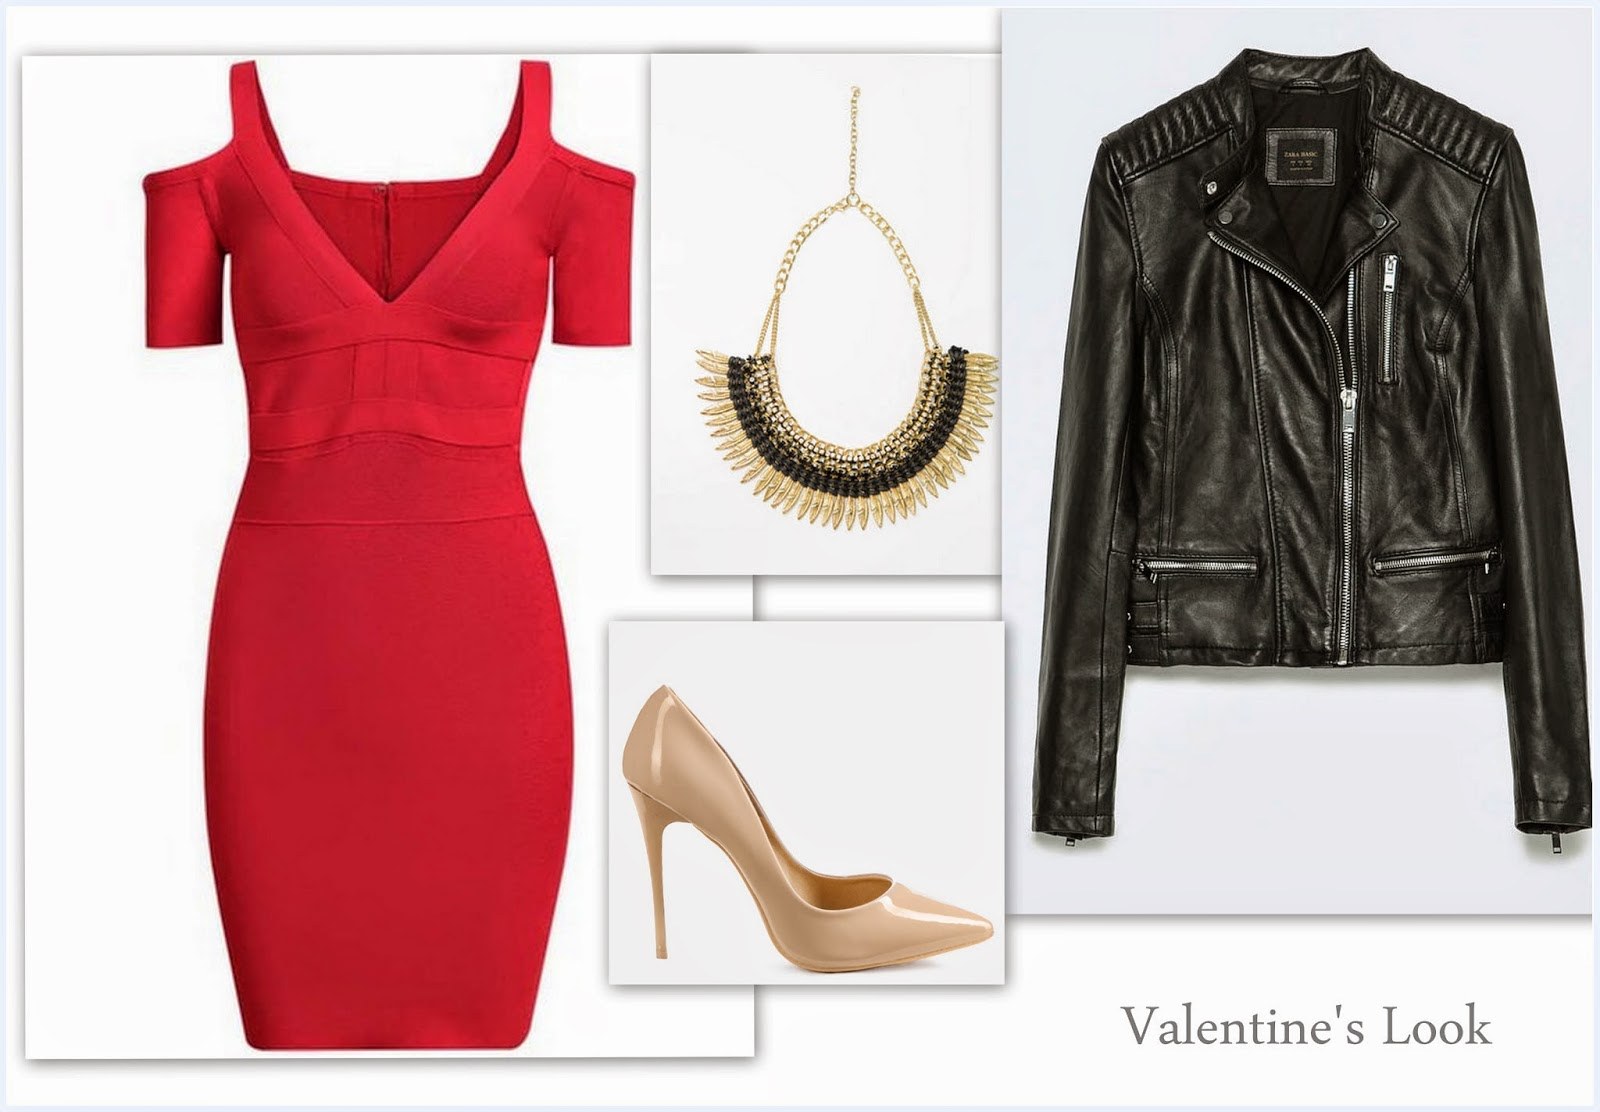 ♥ VALENTINE'S OUTFIT ♥